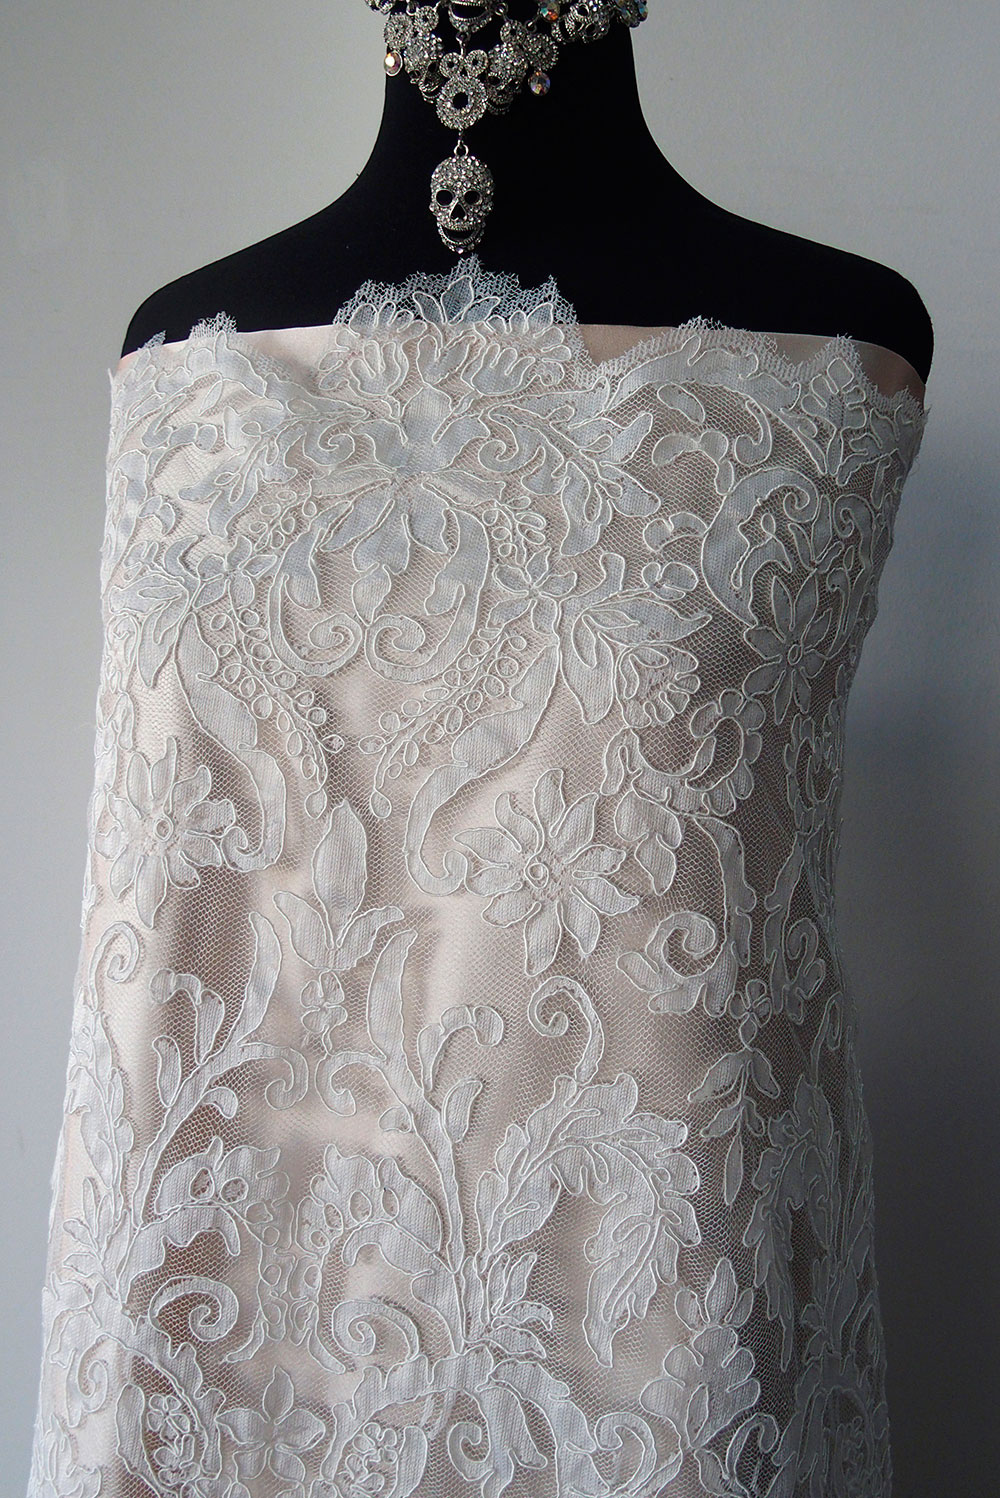 Ivory bridal lace fabric corded lace Alencon, scallop edging ...